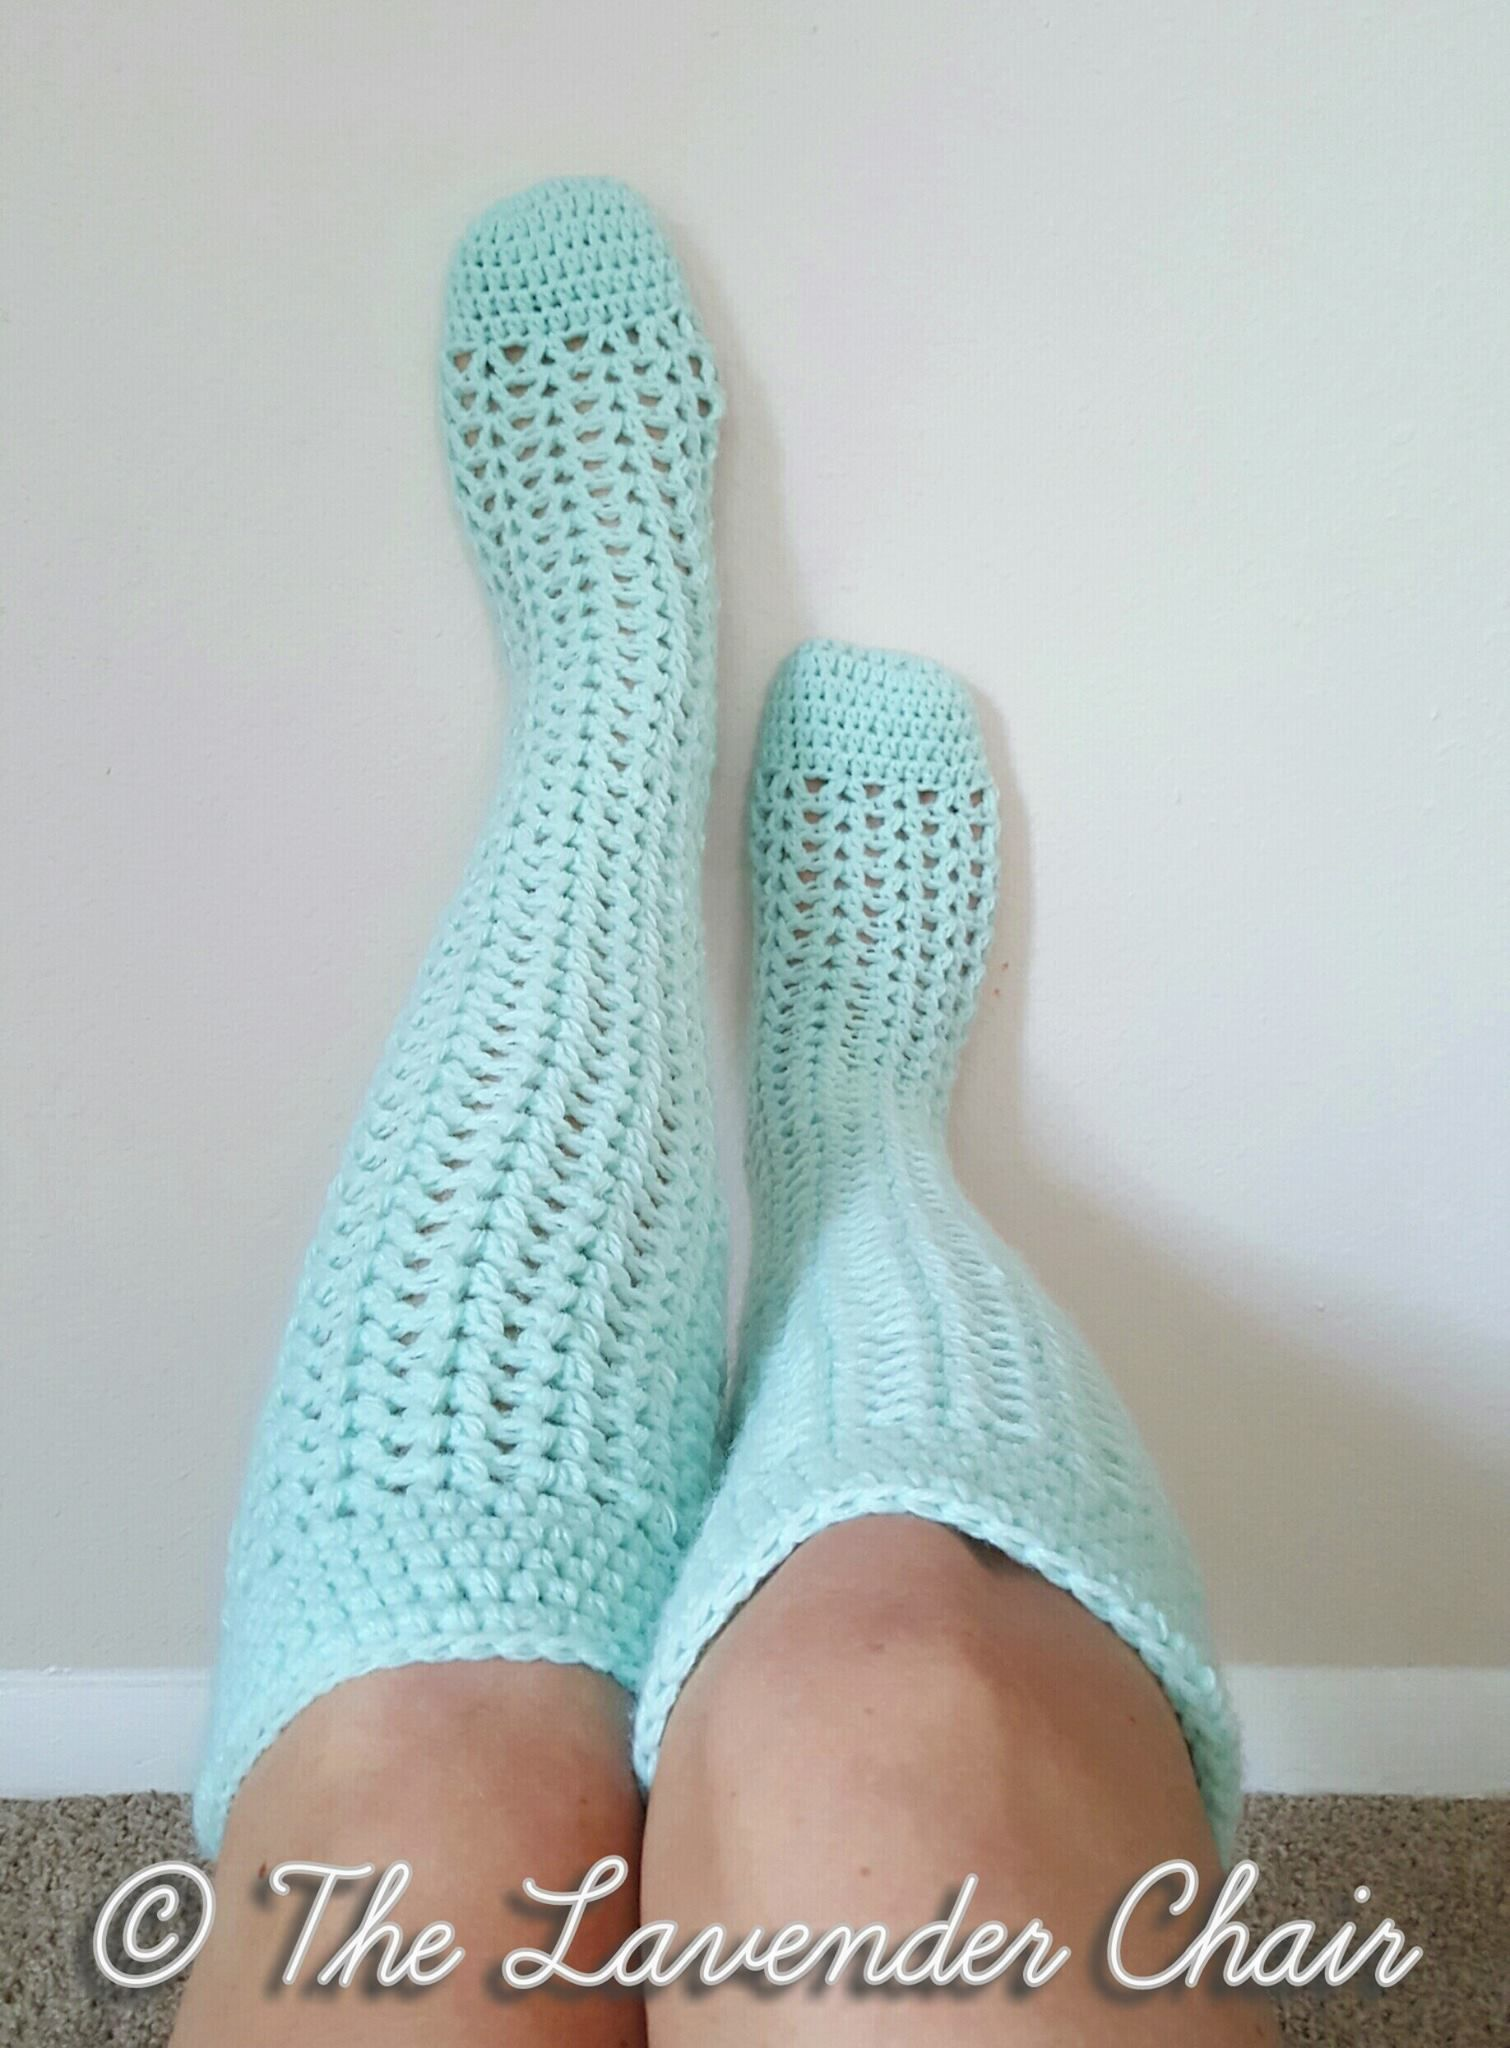 Give a warm feeling to your feet with  sock crochet patterns